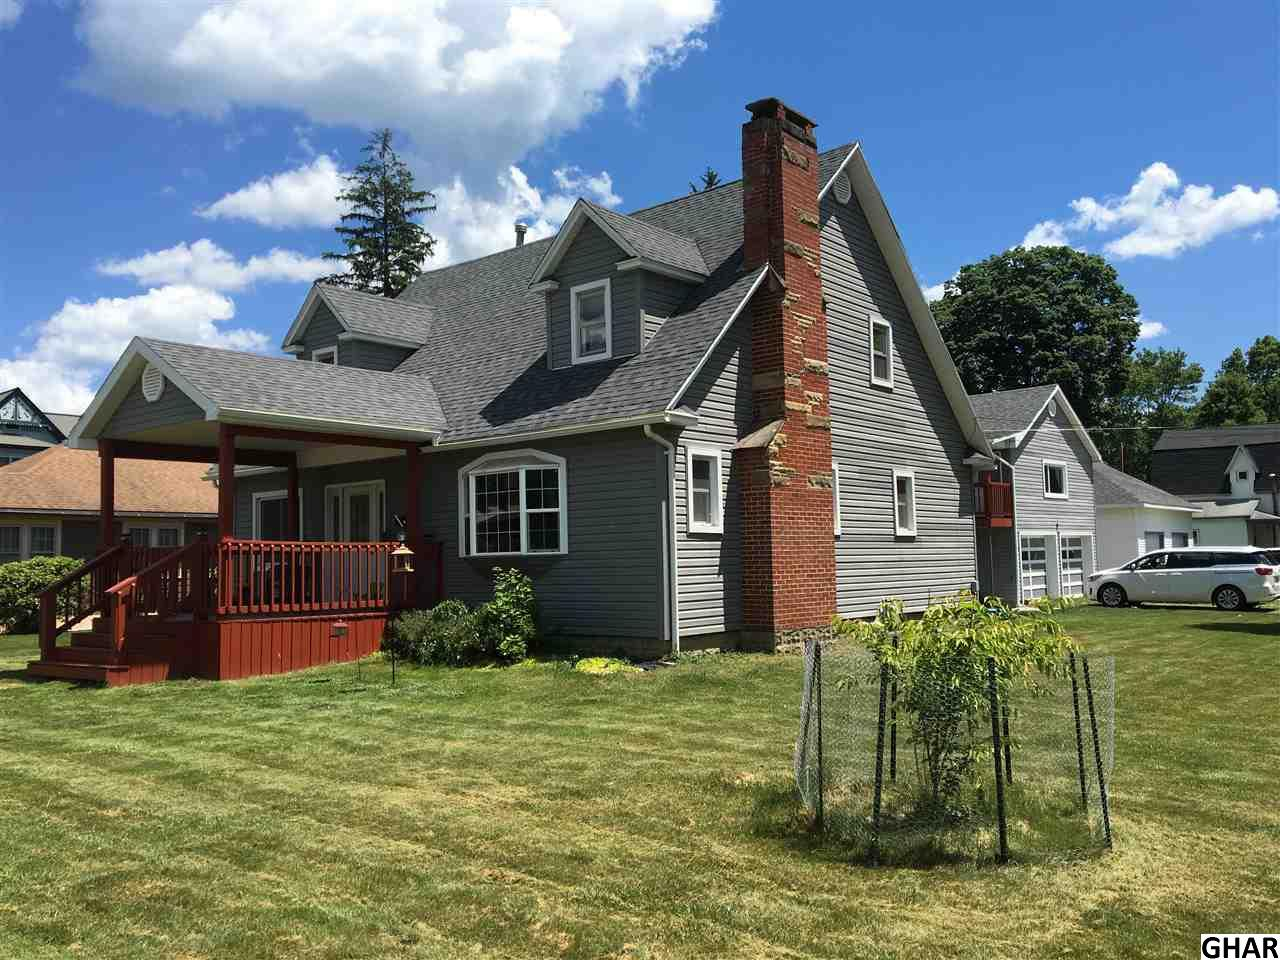 307 S Main St, Coudersport, PA 16915